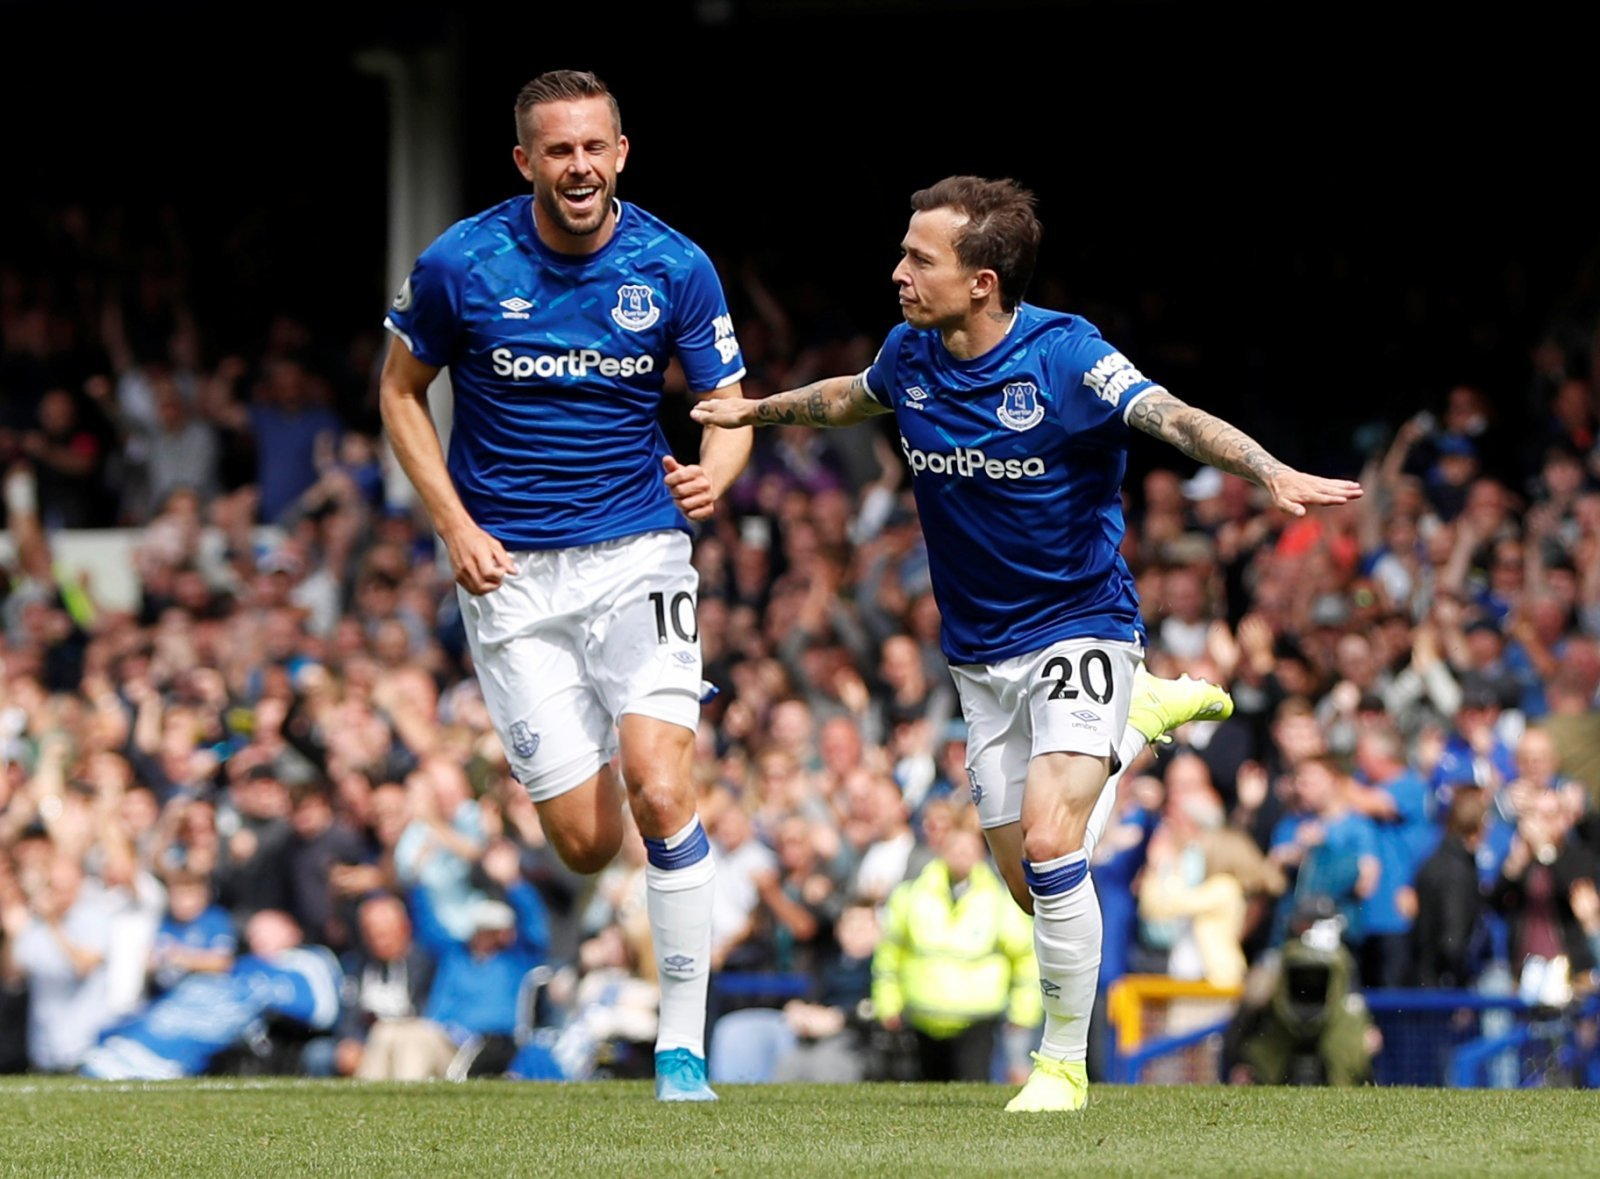 Everton: Sigurdsson hopeful Silva can rely on Walcott and Davies